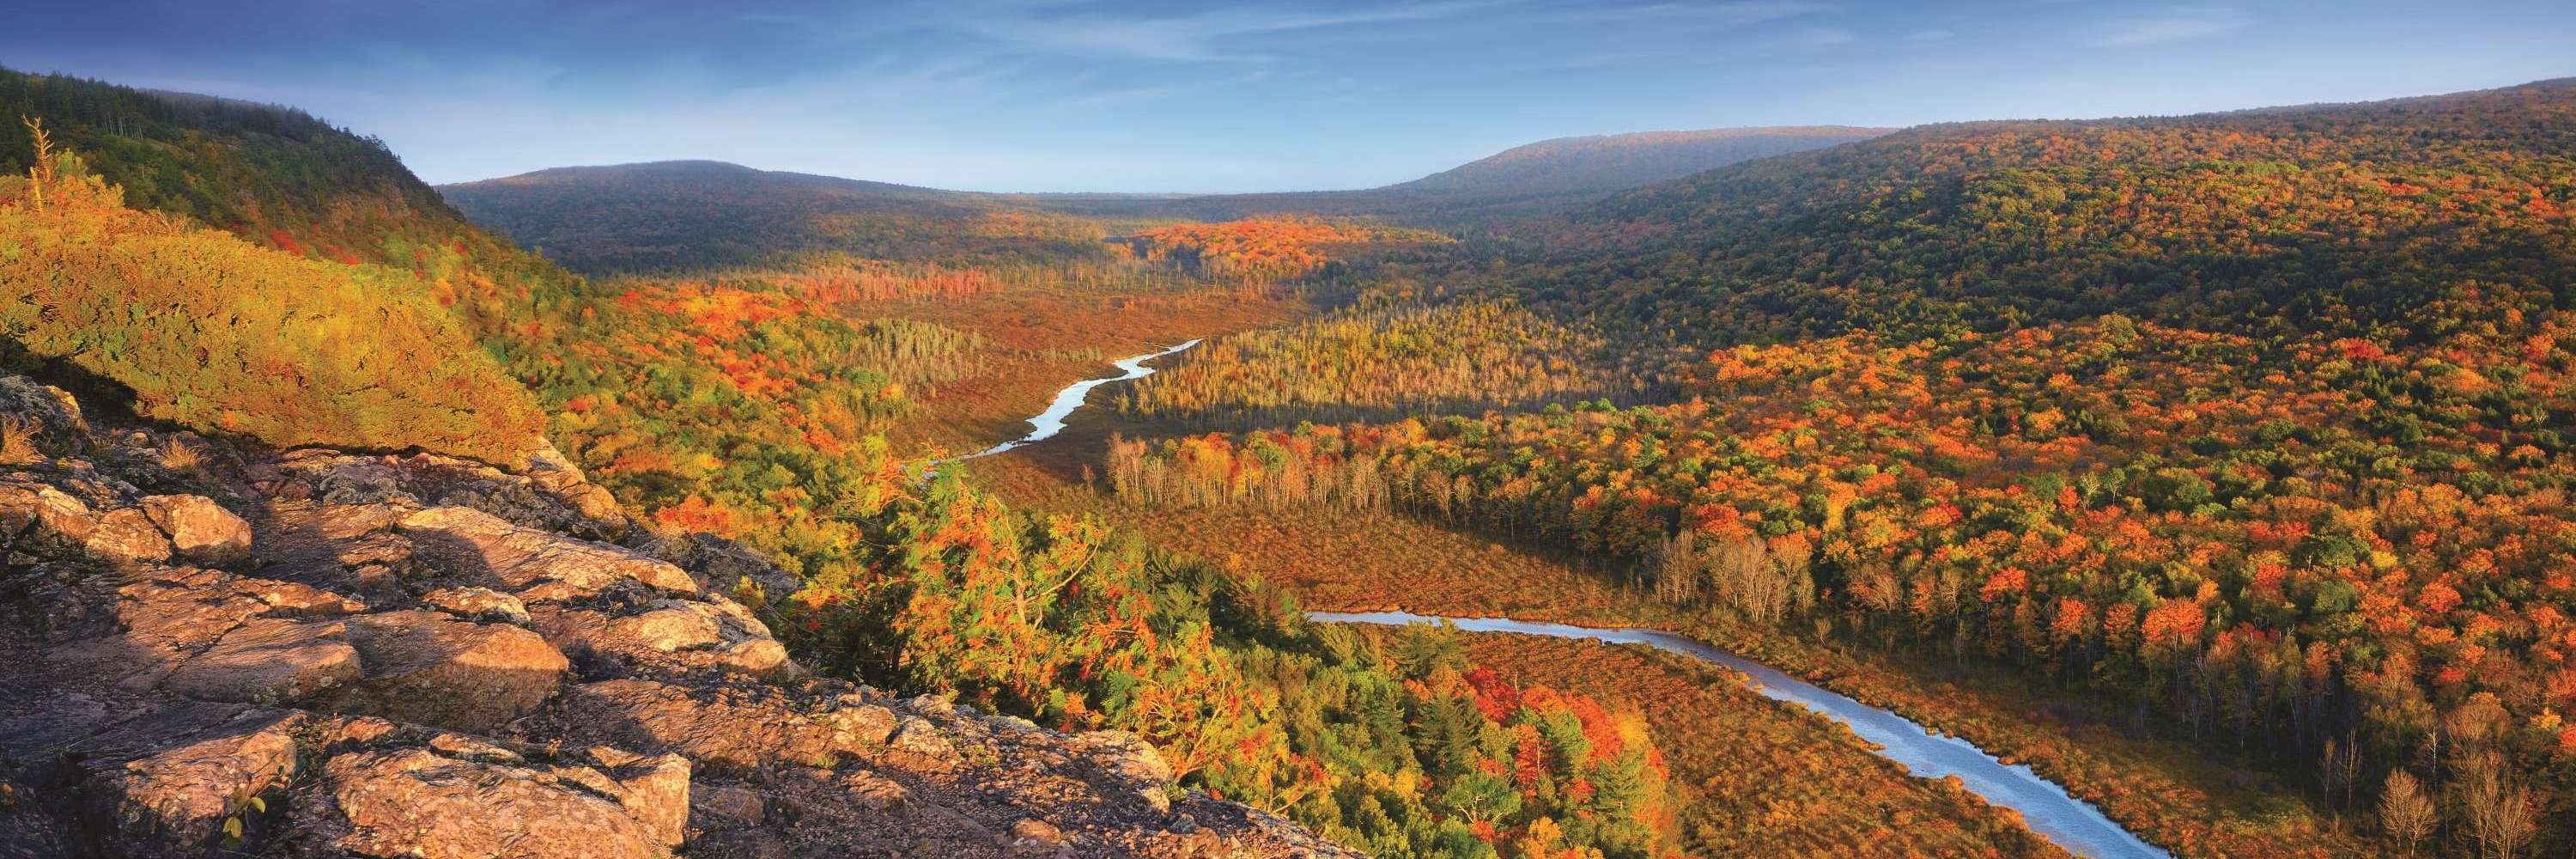 Porcupine Mountains pc UPTRA